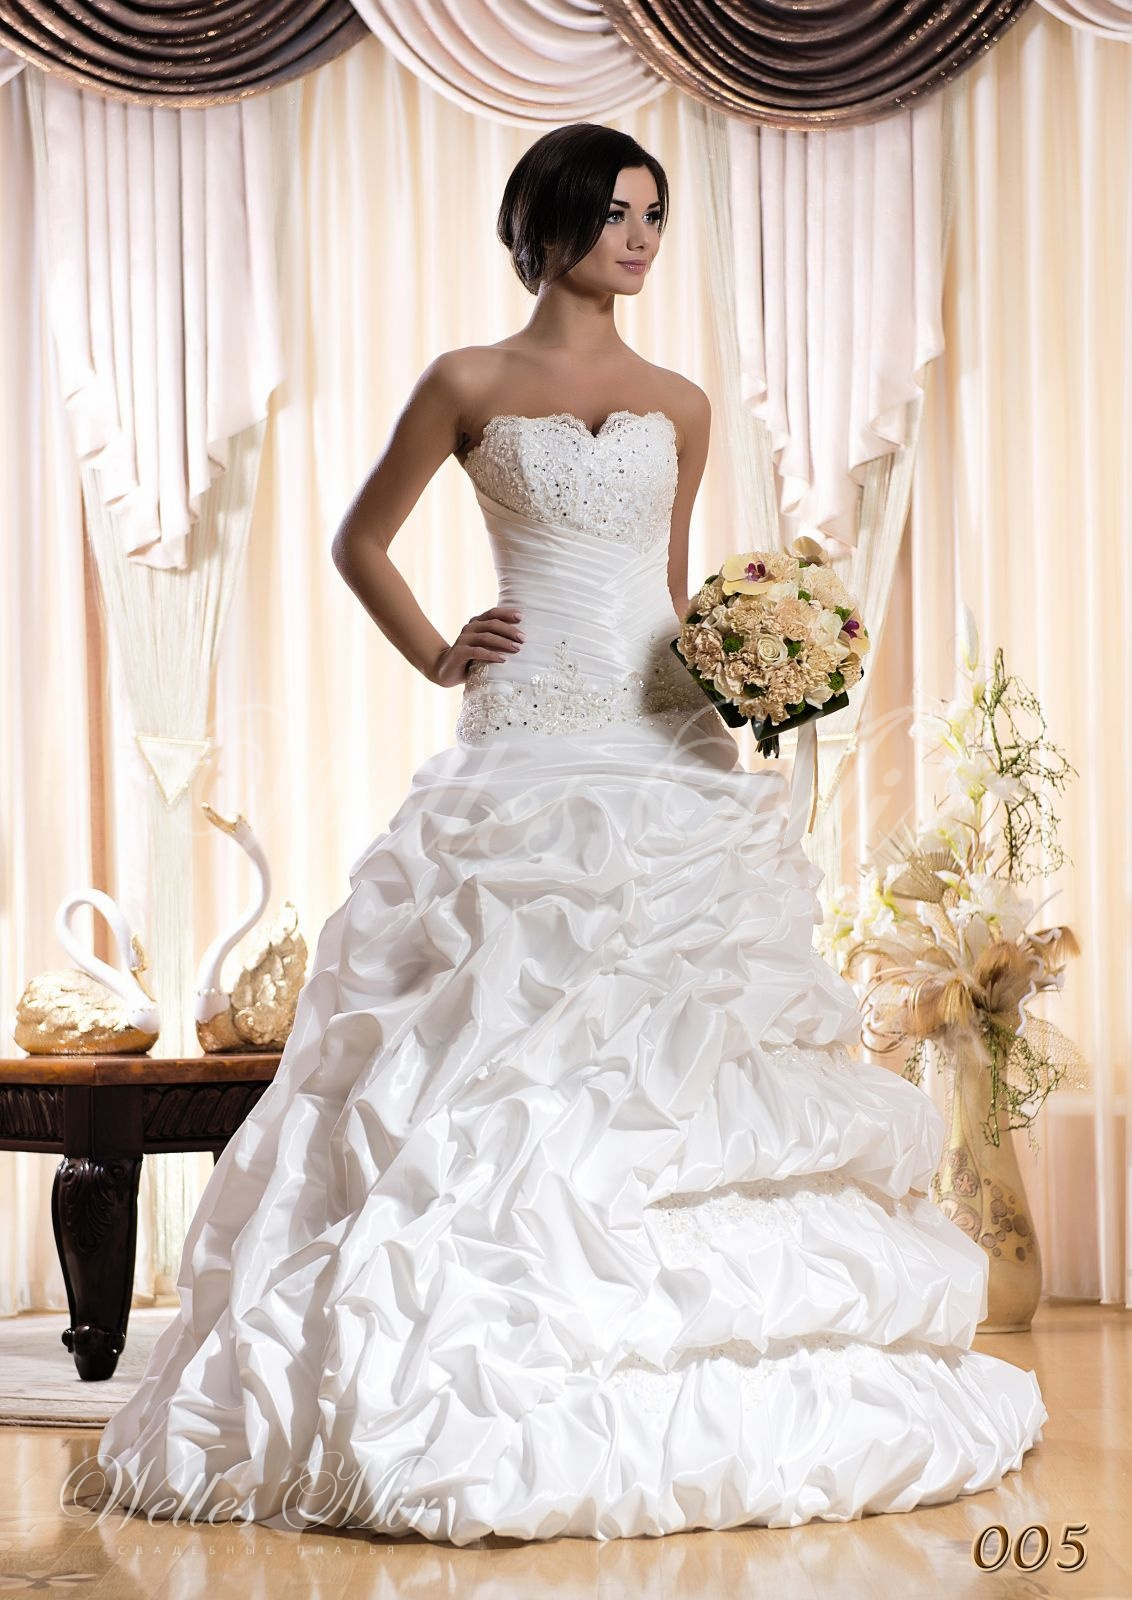 Wedding dresses 005